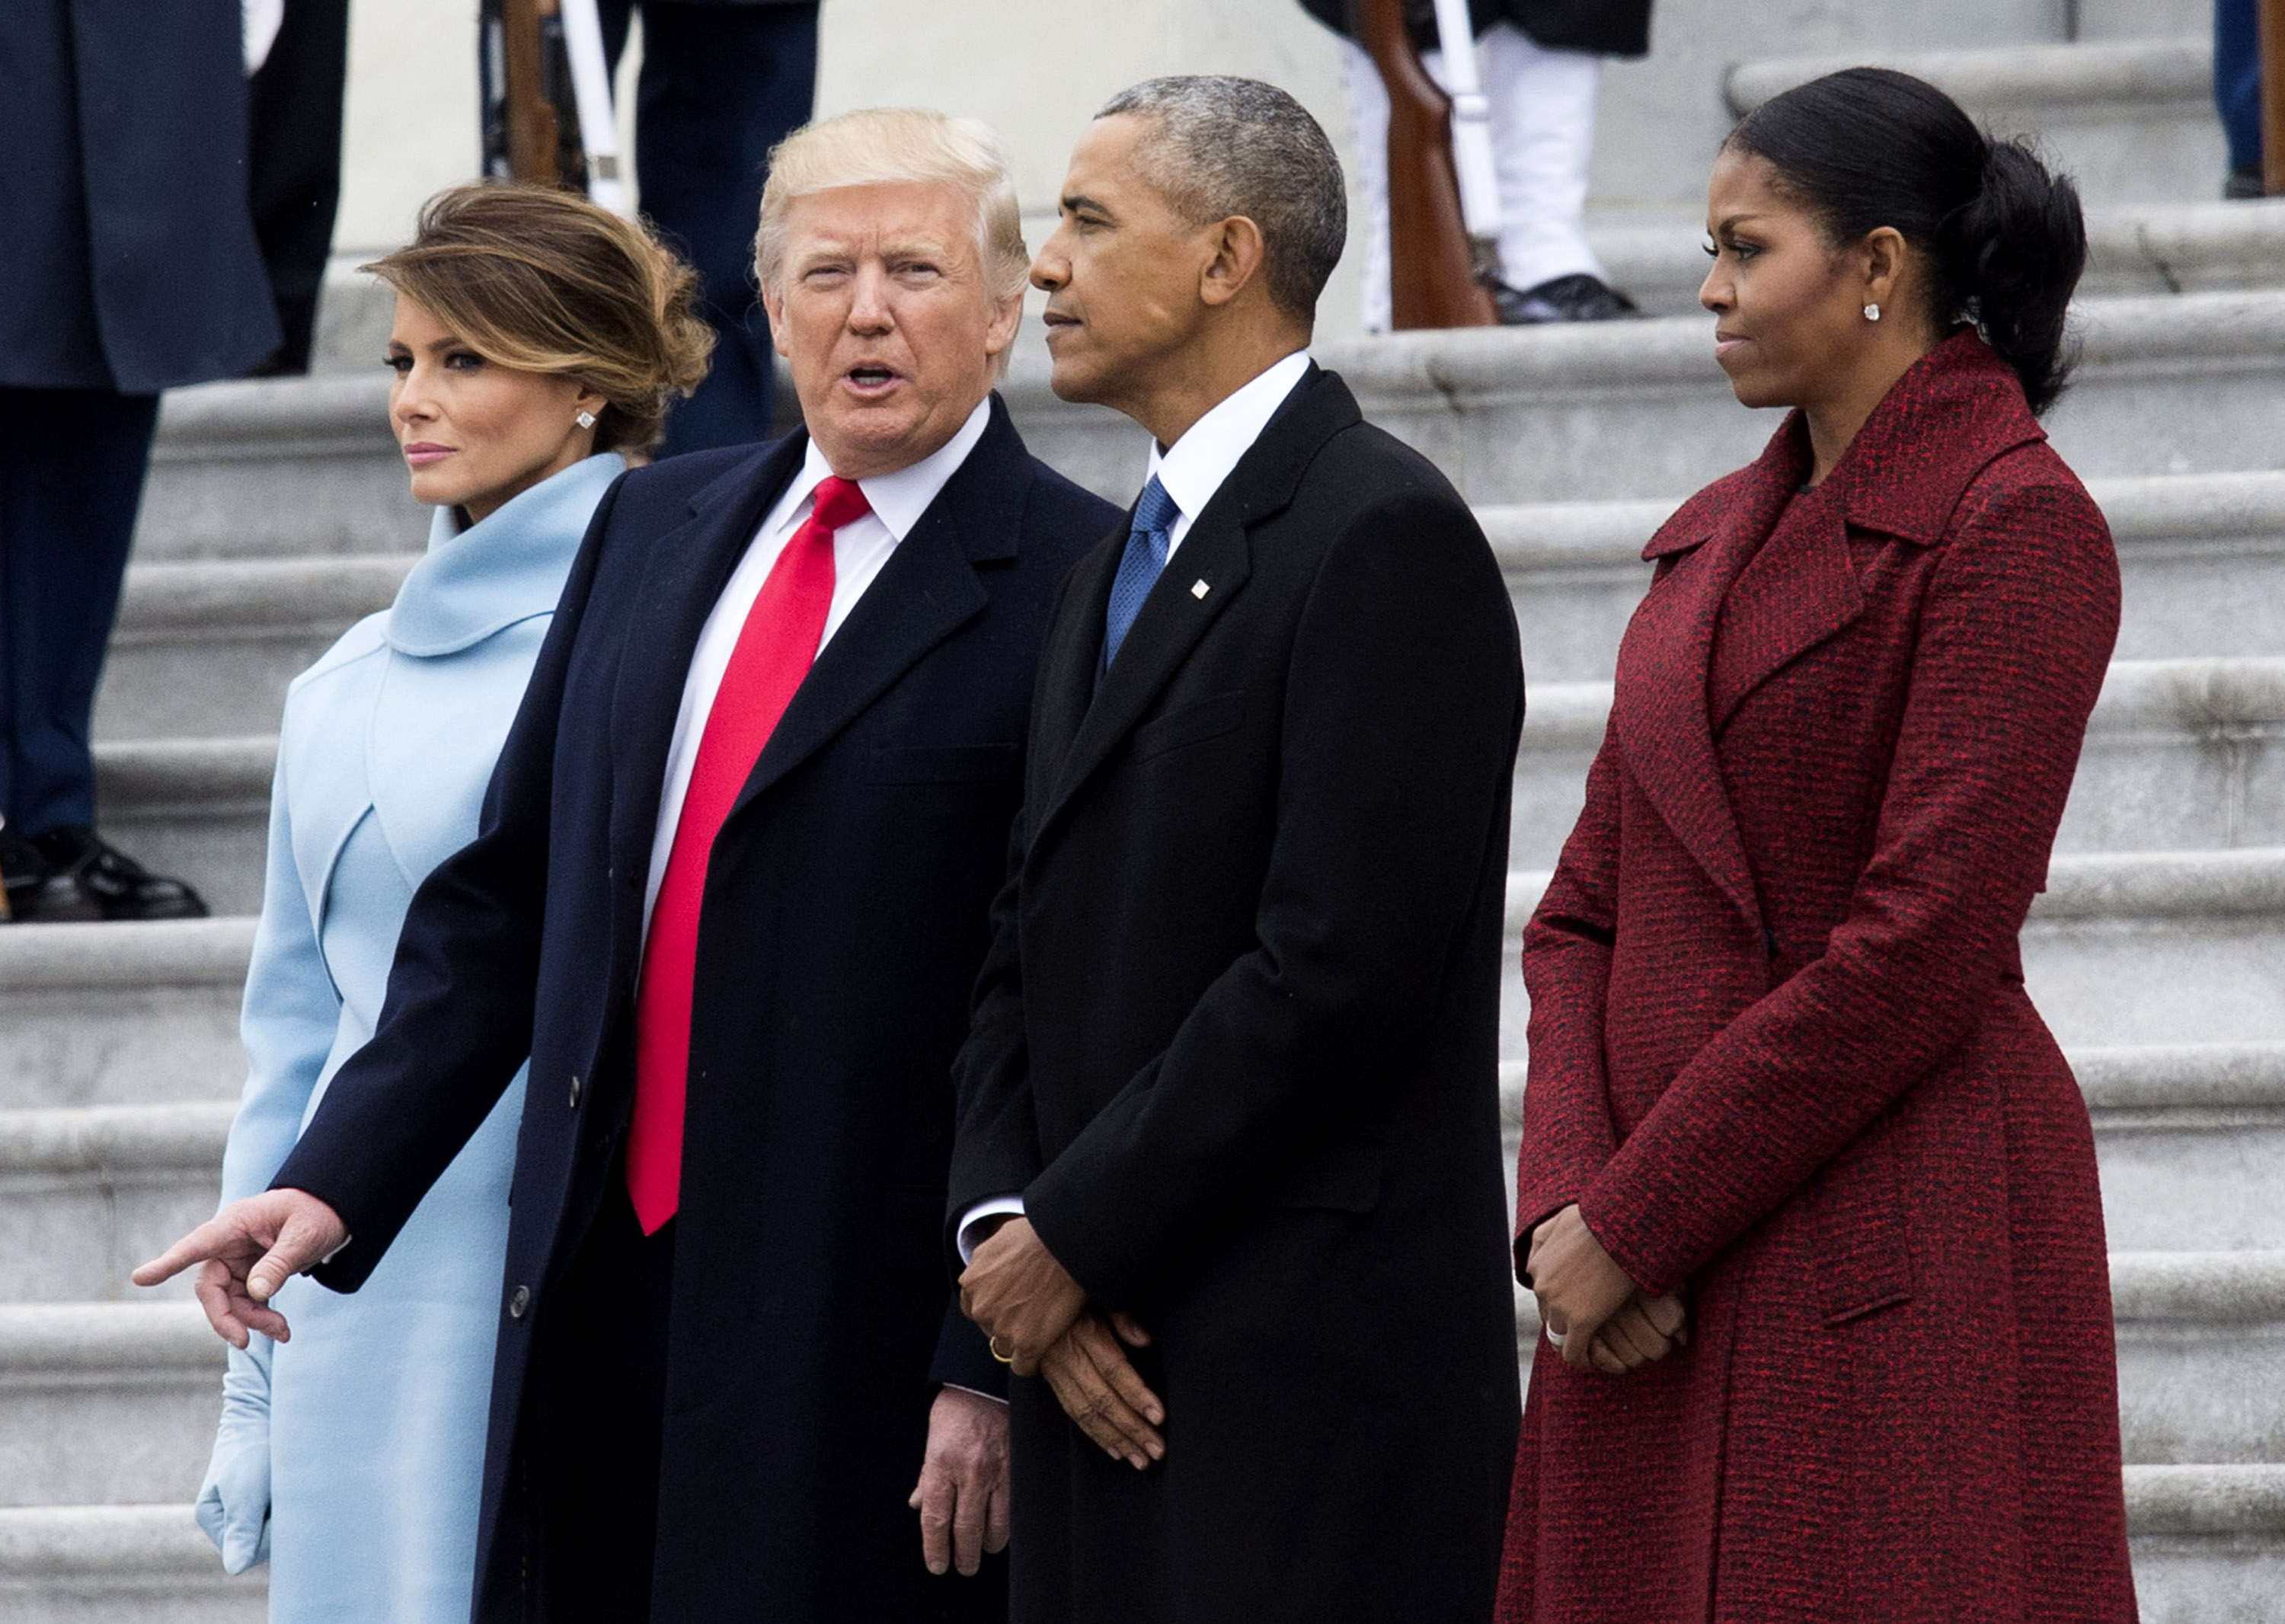 President Donald Trump (2nd-L) First Lady Melania Trump (L), former President Barack Obama (2nd-R) and former First Lady Michelle Obama walk together following the inauguration, on Capitol Hill in Washington, D.C. on January 20, 2017. (Kevin Dietsch - Pool/Getty Images)